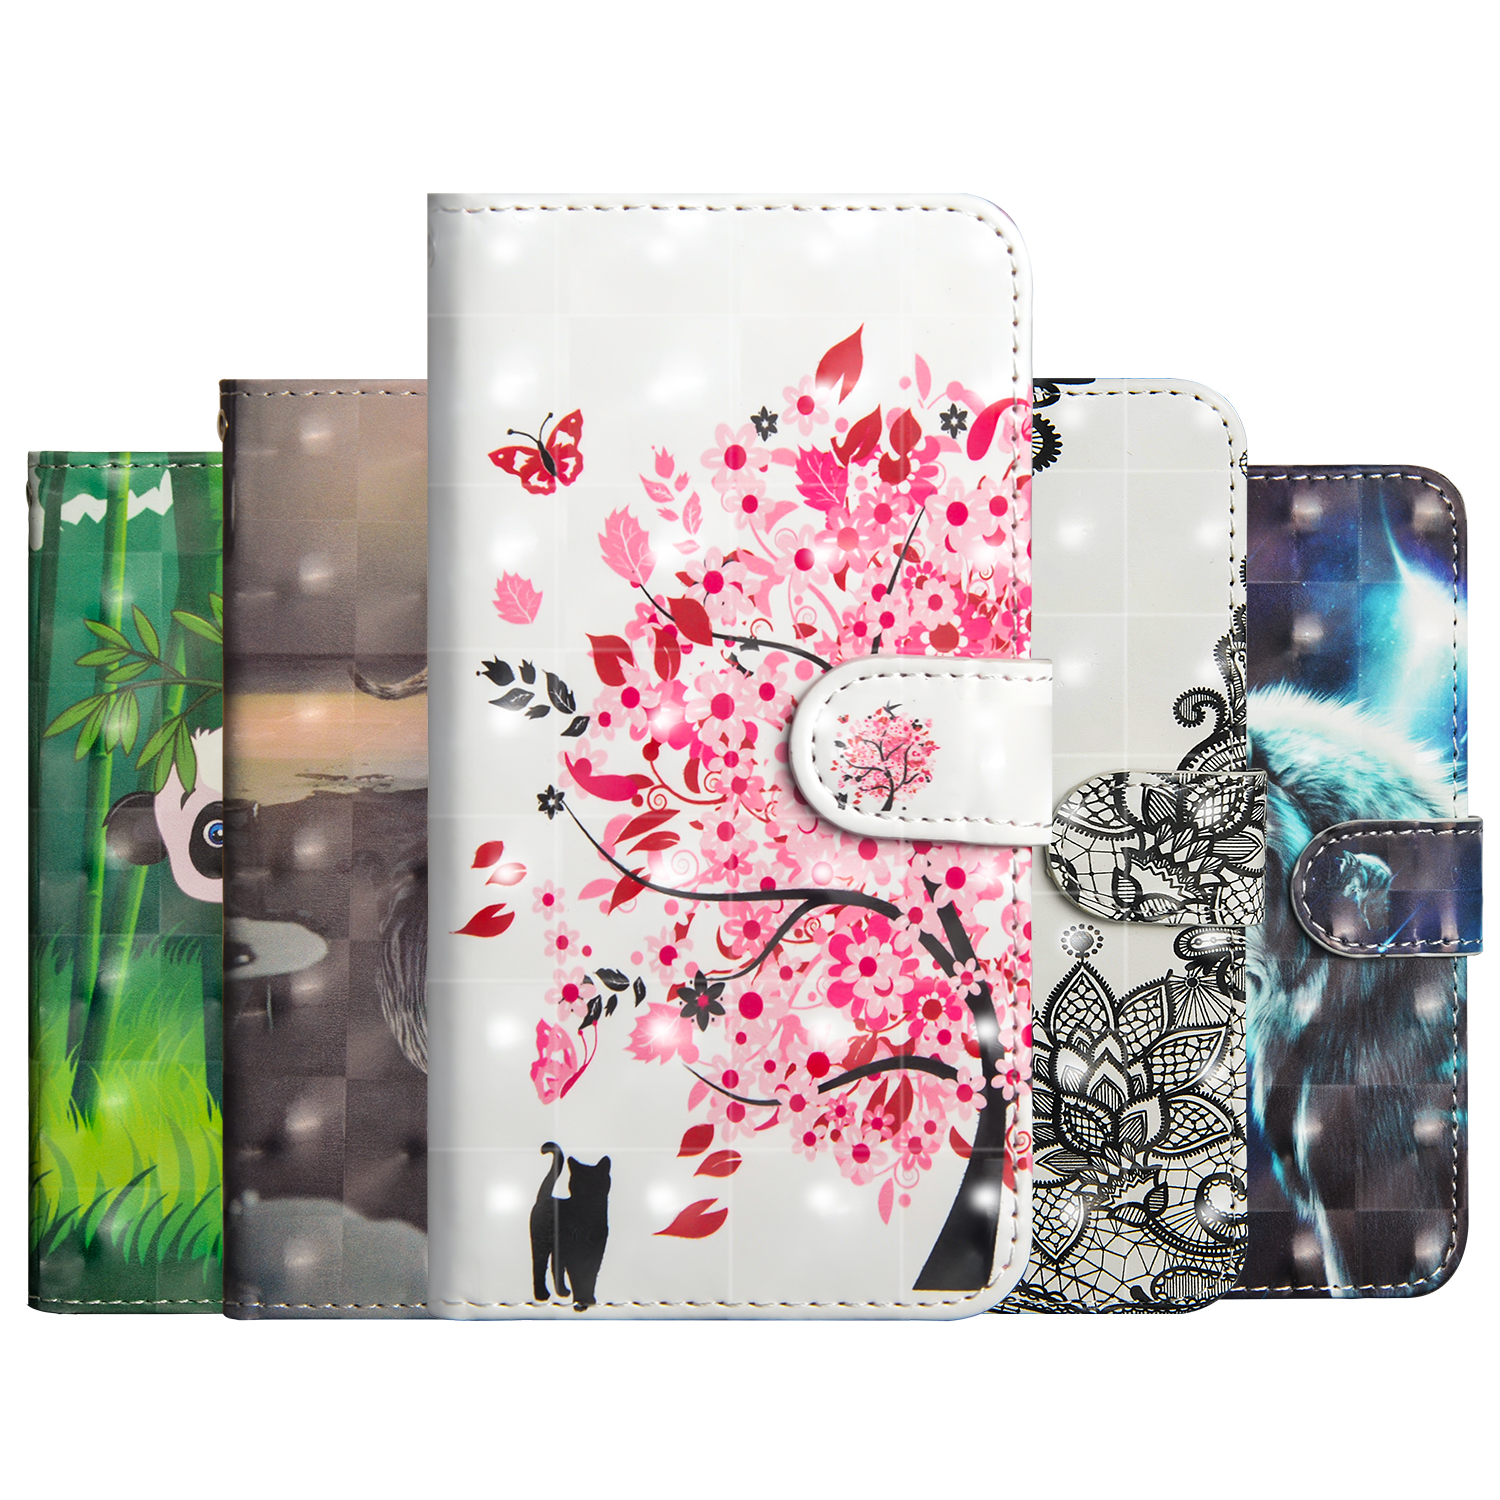 Fashion clamshell wallet case for Xiaomi 8 SE Redmi 6 Pro note7 PLAY 3D holder phone